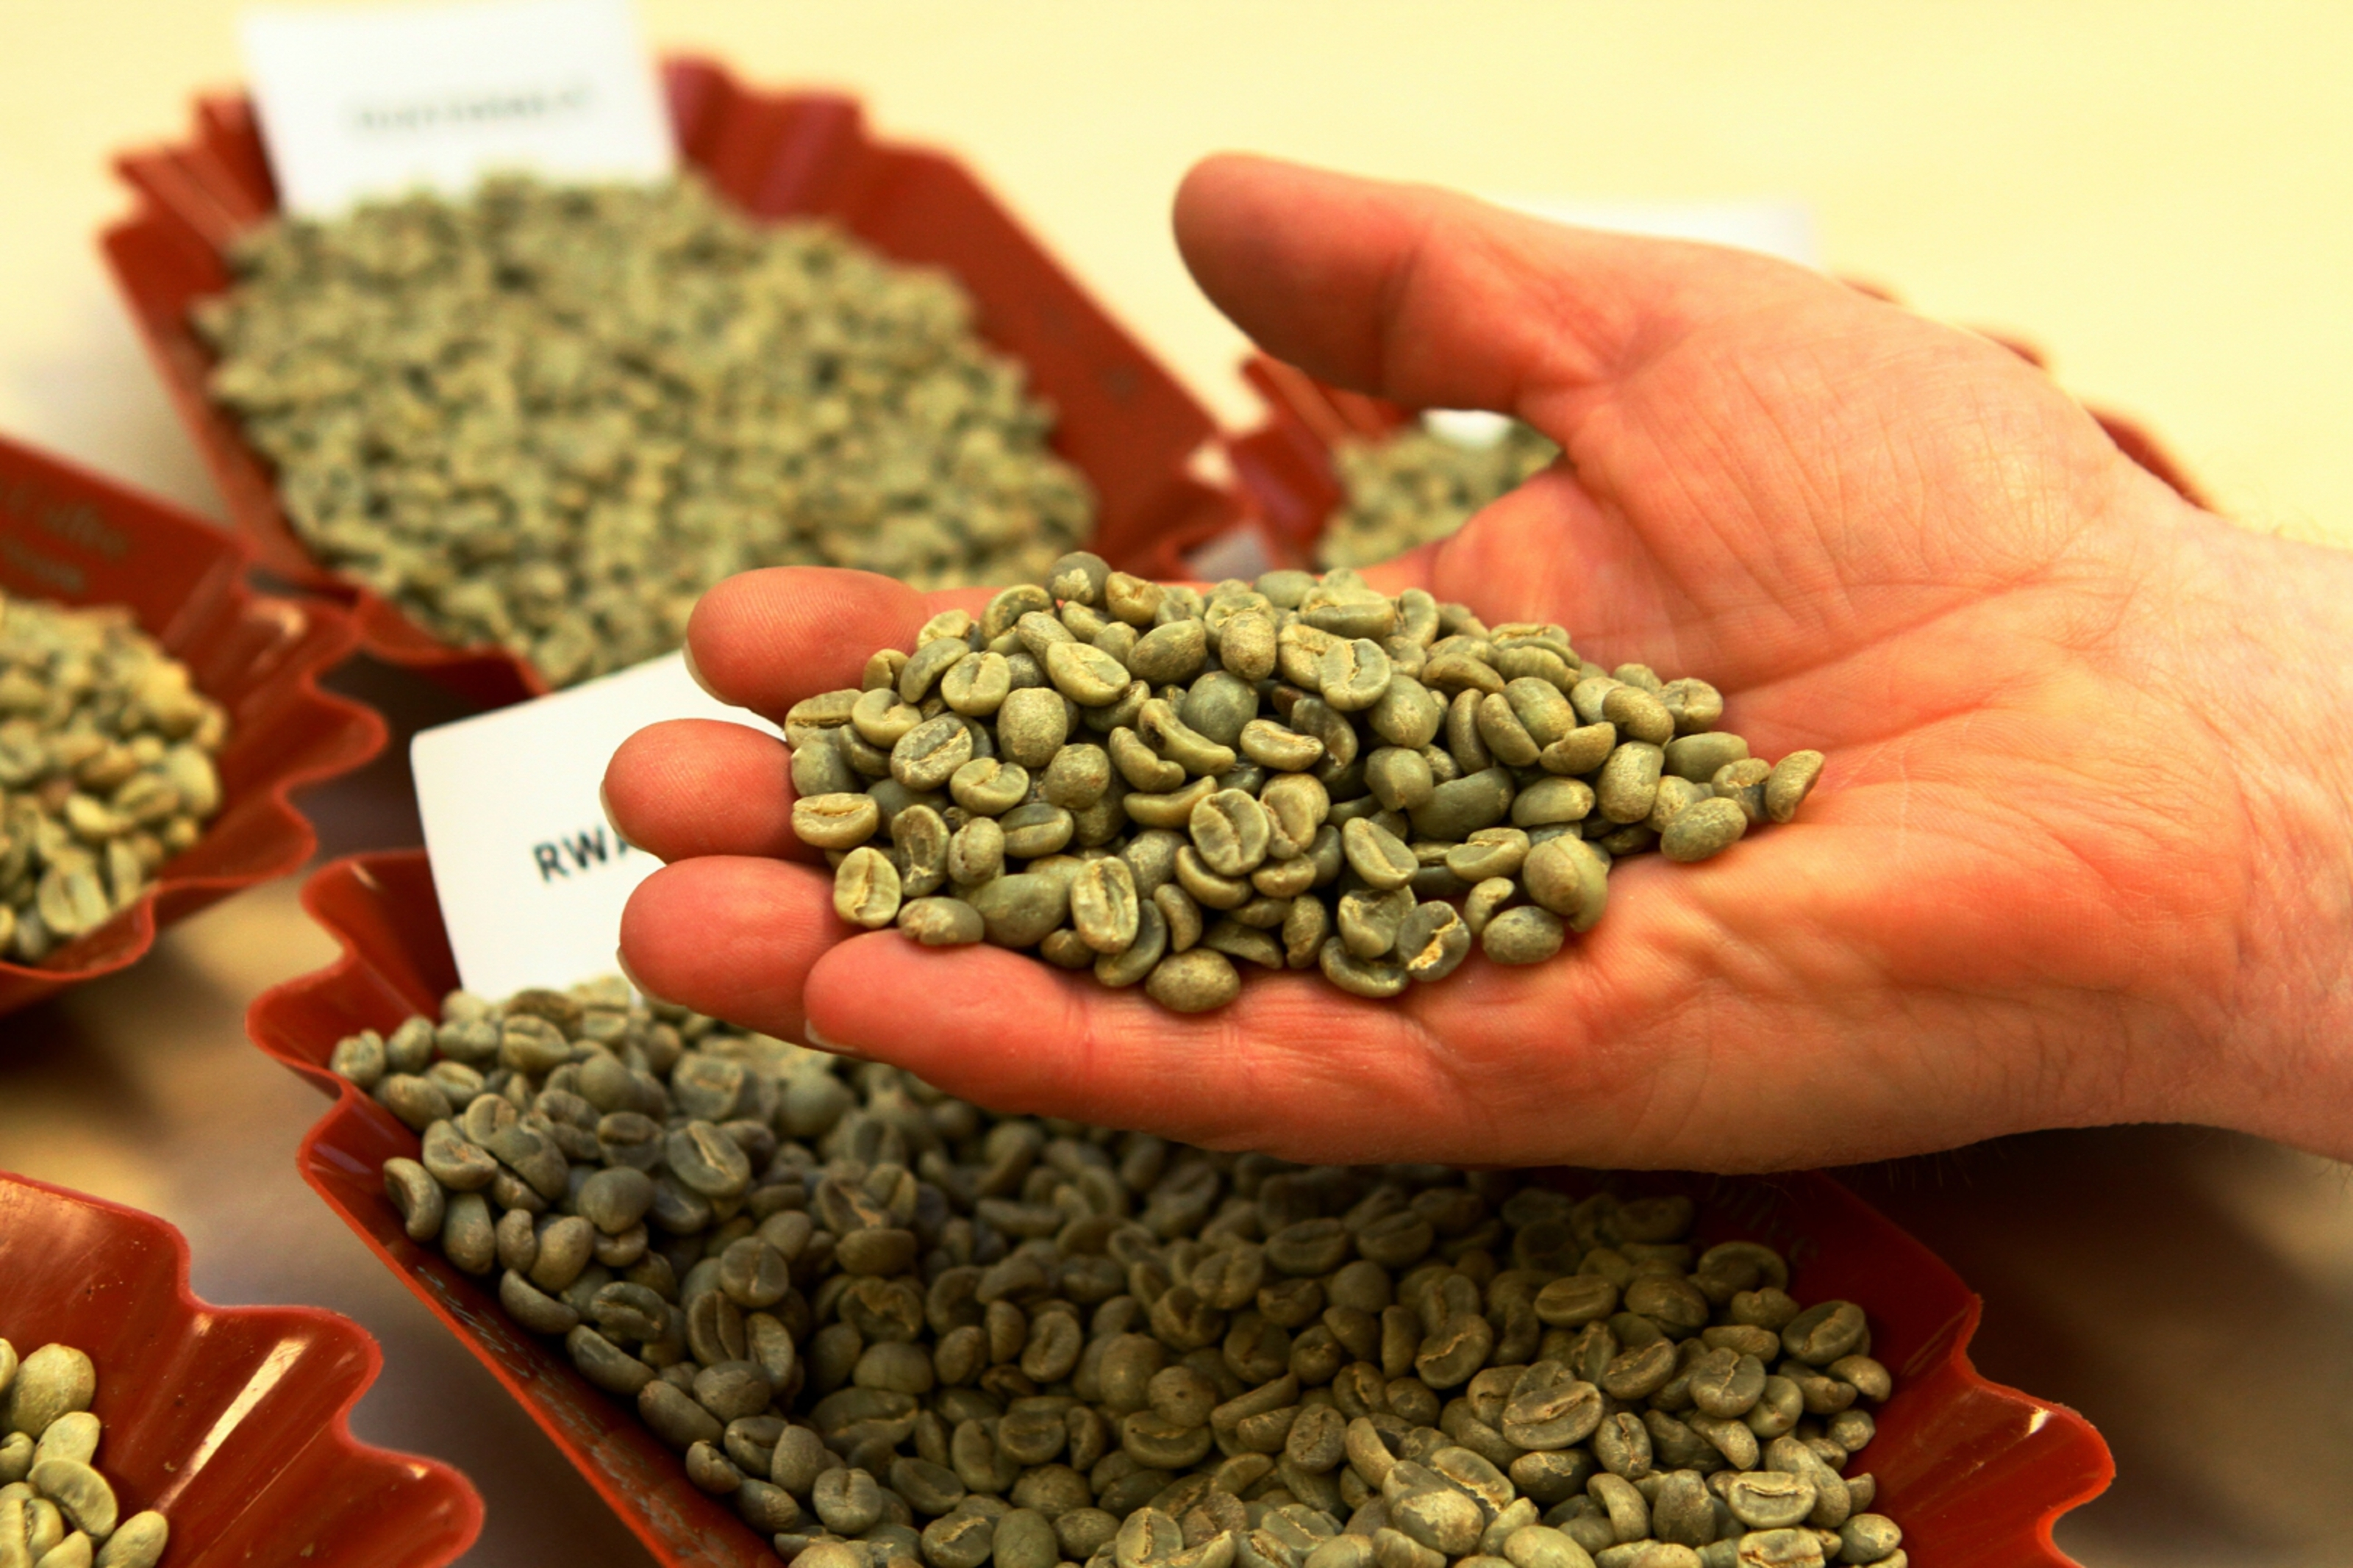 A handful of coffee beans, at James Aimer.